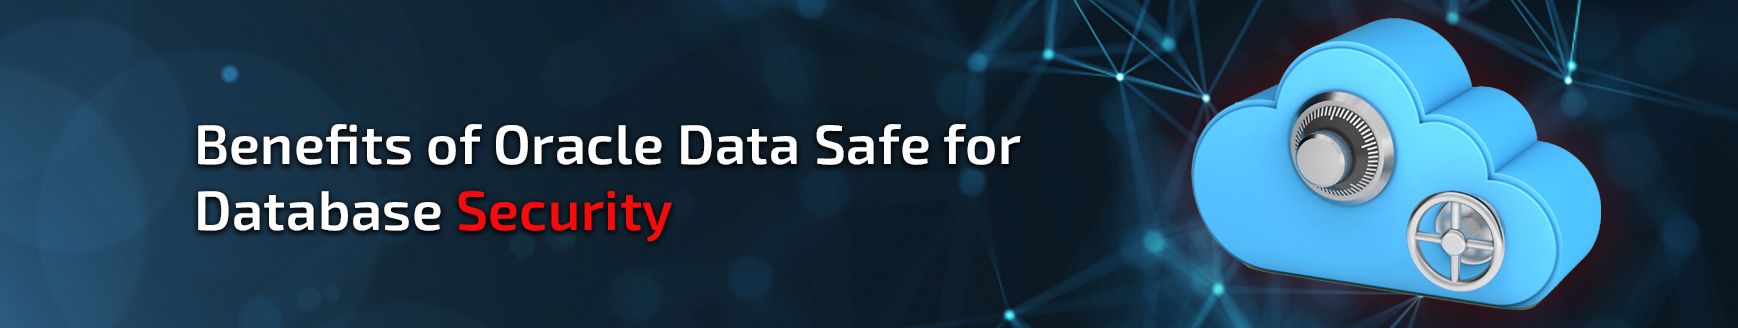 Benefits of Oracle Data Safe for Database Security